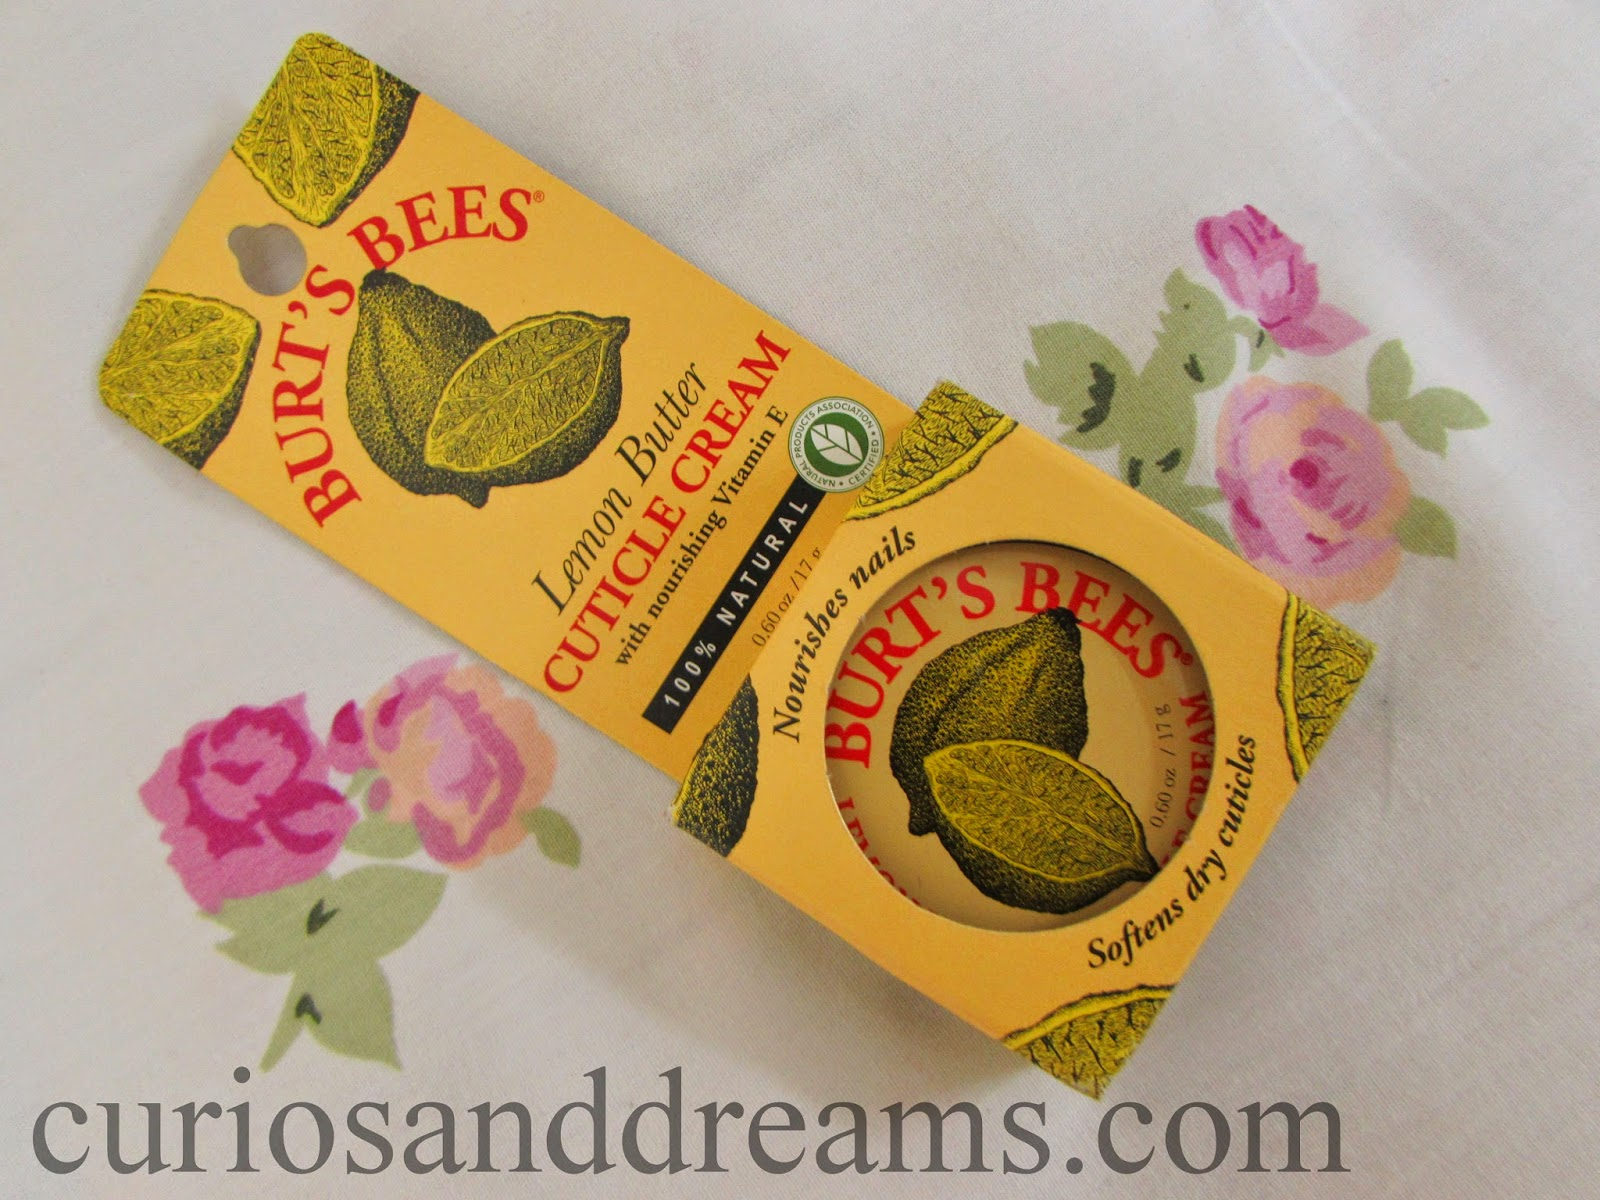 Burt's Bees Lemon Butter Cuticle Cream, Burt's Bees Lemon Butter Cuticle Cream review, Burt's Bees Cuticle Cream